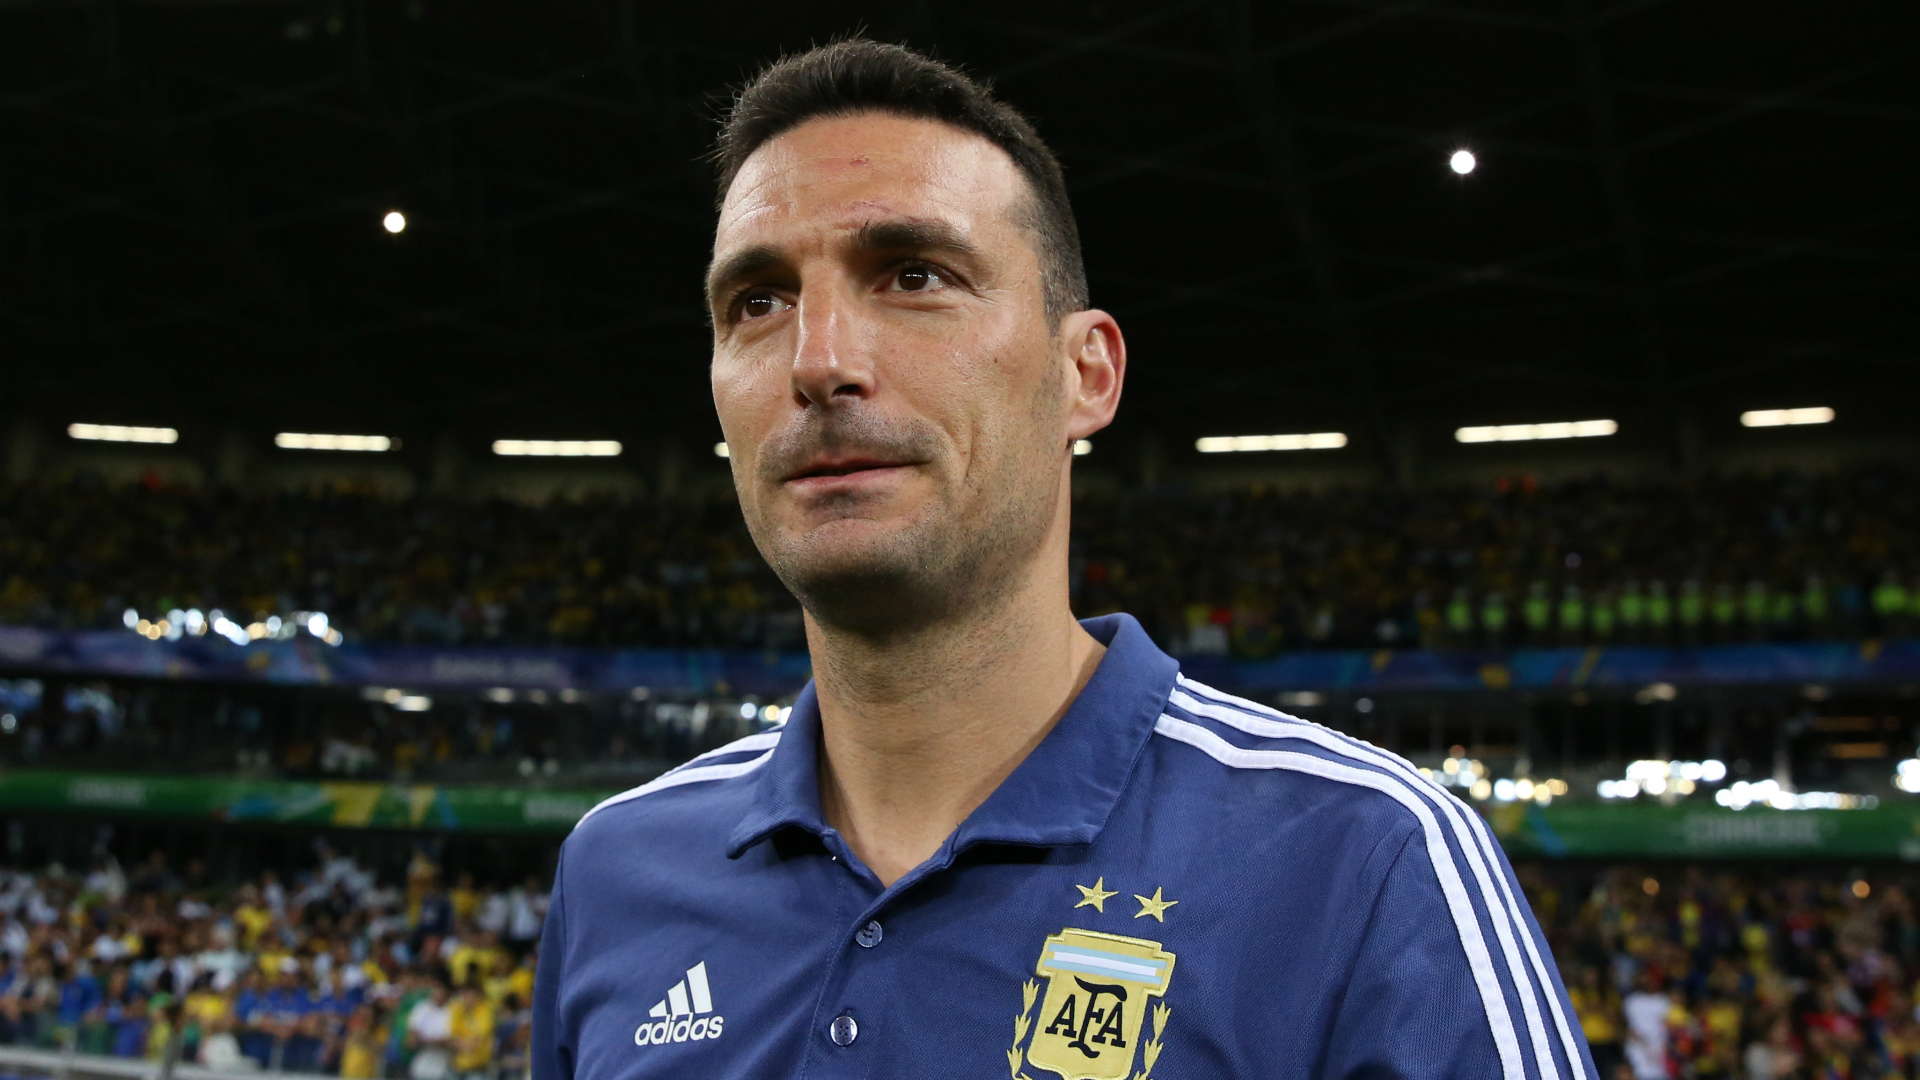 Scaloni hails 'perfect' Argentina's team spirit